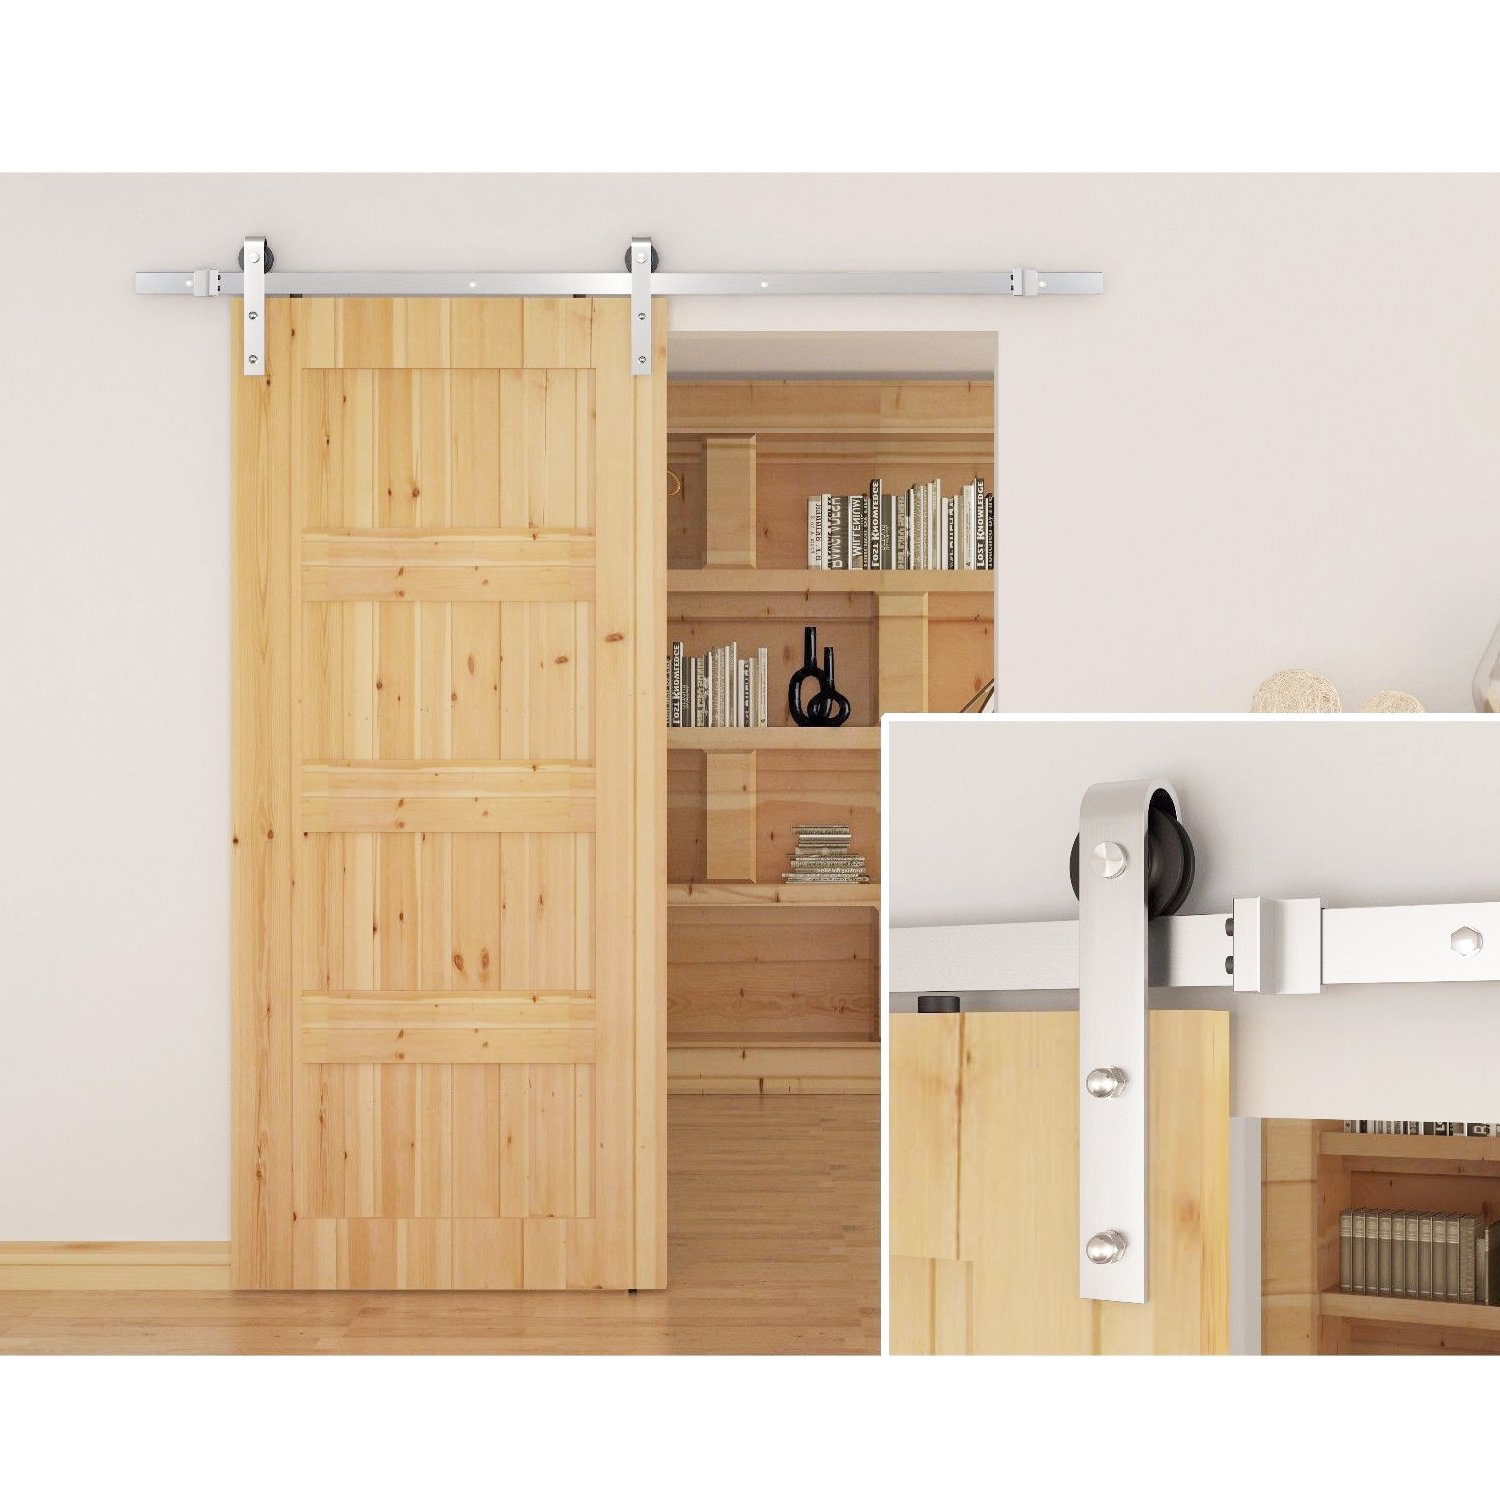 SMARTSTANDARD SDH0080STAINLESS03 Stainless Steel Sliding Barn Door Hardware Kit, 8ft Single Rail,Silver, Super Smoothly and Quietly, Simple and Easy to Install, Fit 48'' Wide DoorPanel by SMARTSTANDARD (Image #2)